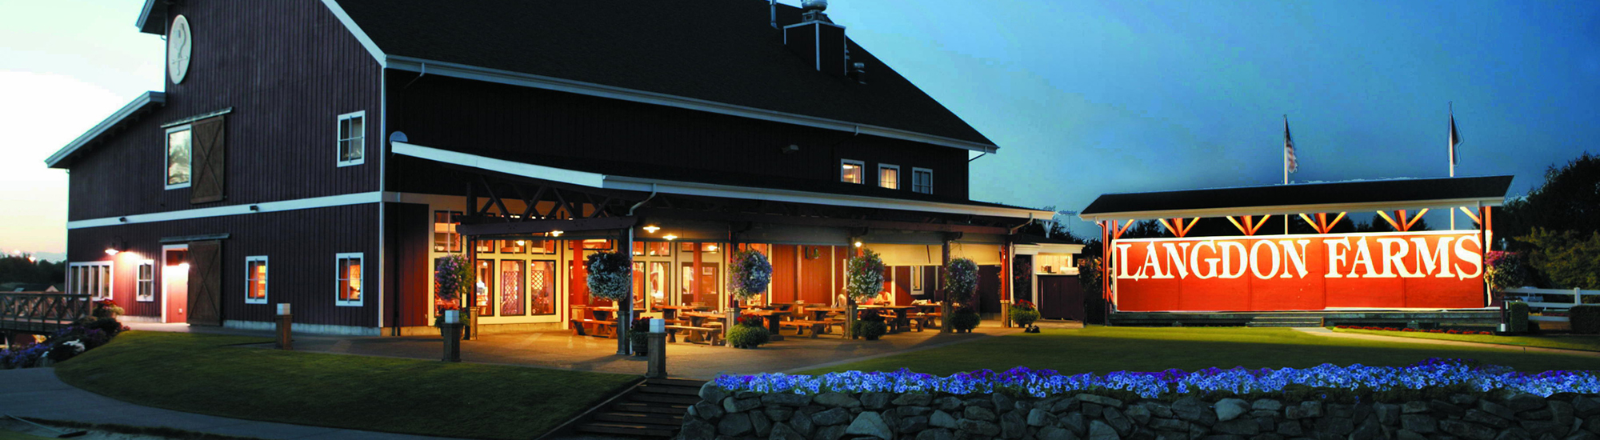 Twilight view of Langdon Farms golf Club's big red barn-like clubhouse and restaurant patio with lit Langdon Farms sign